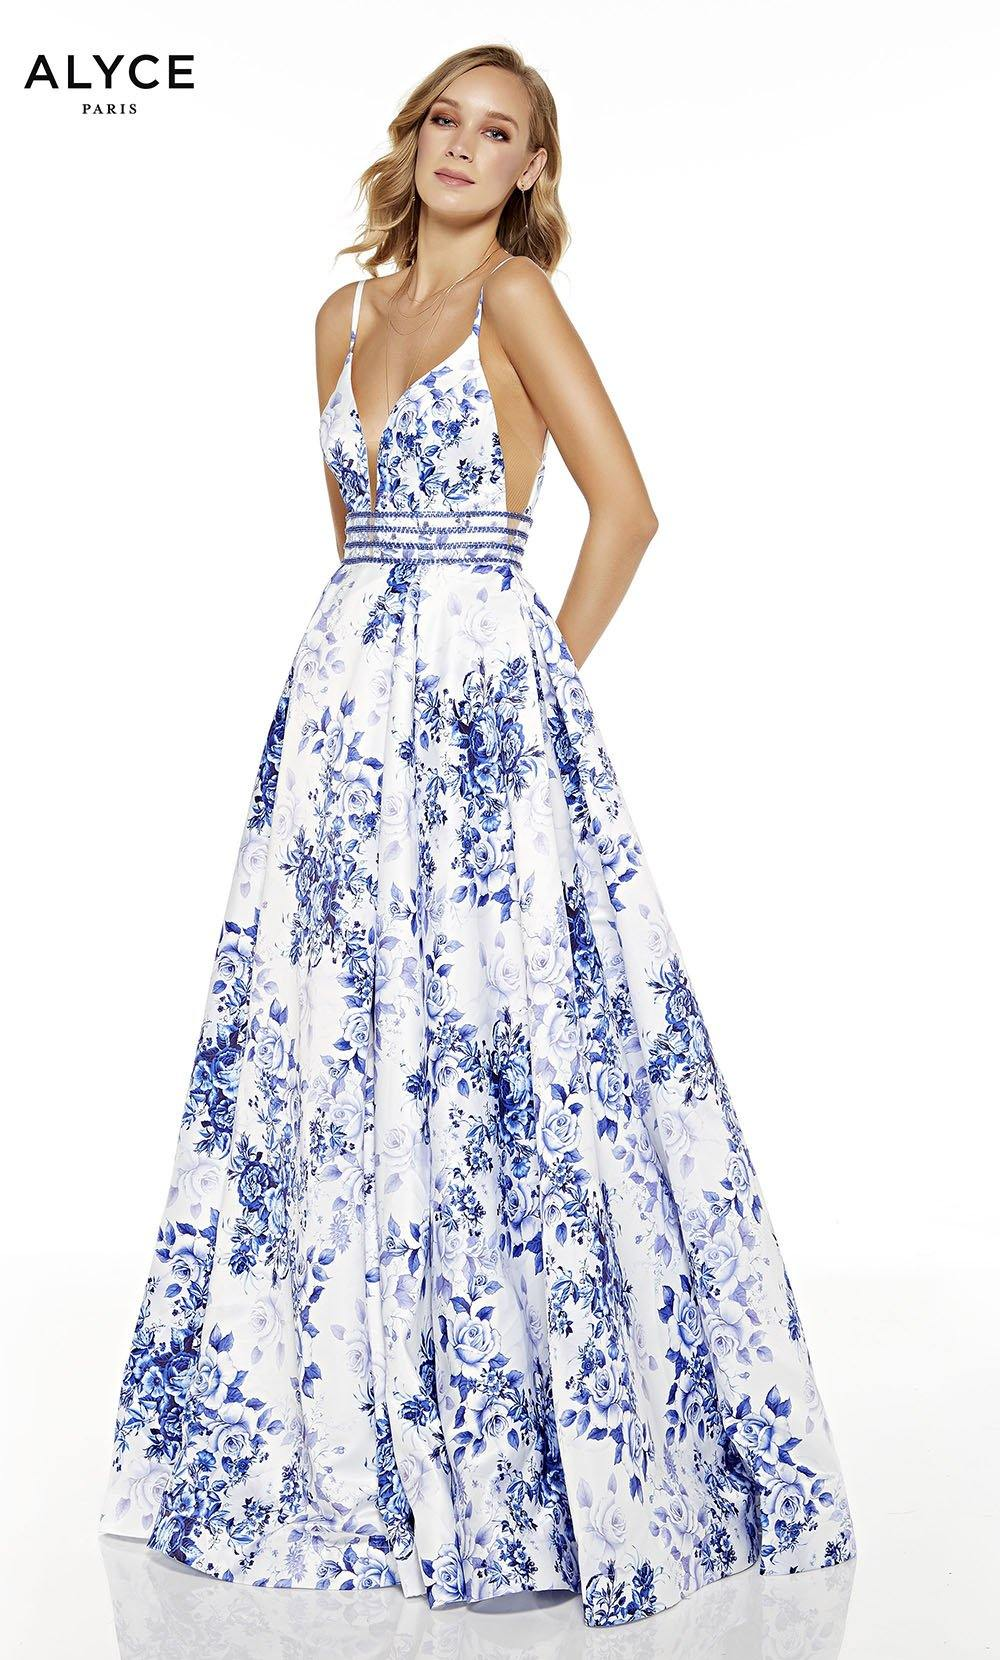 Diamond White-Royal formal dress with  floral print and high slit